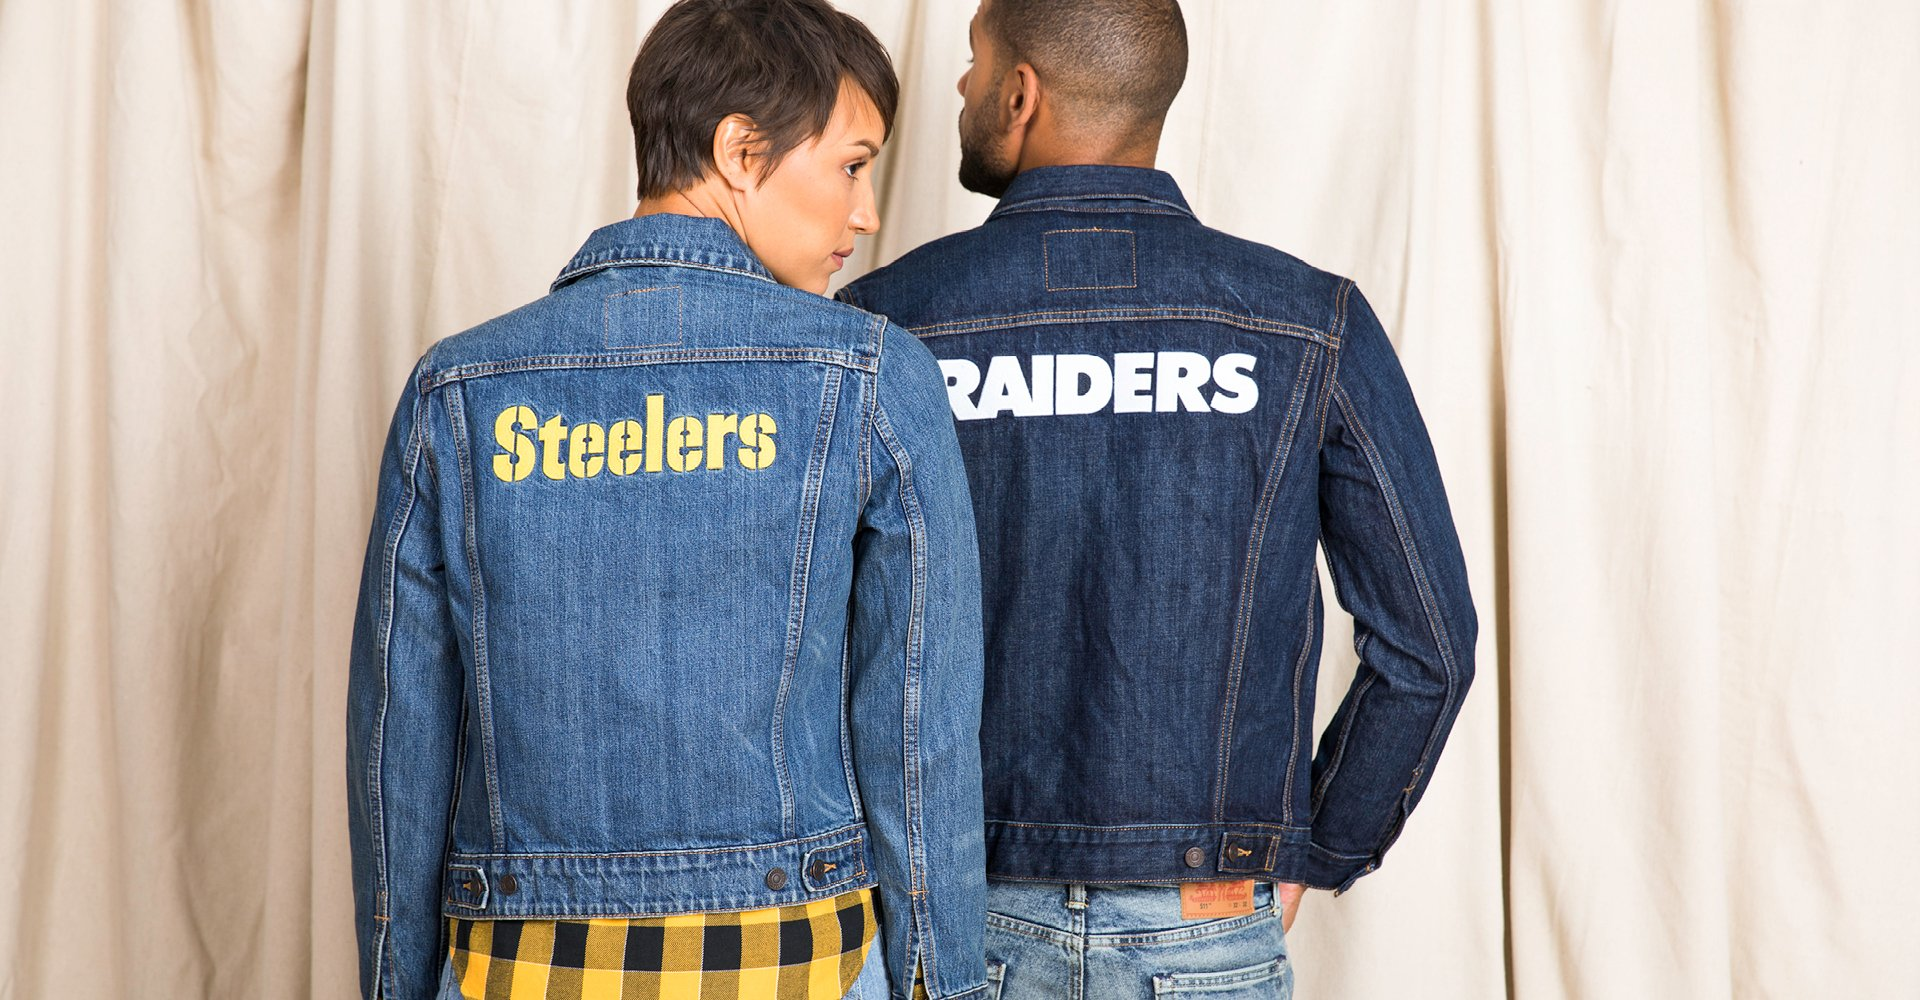 Image of a Man and a Woman wearing NFL Levi's Jackets.